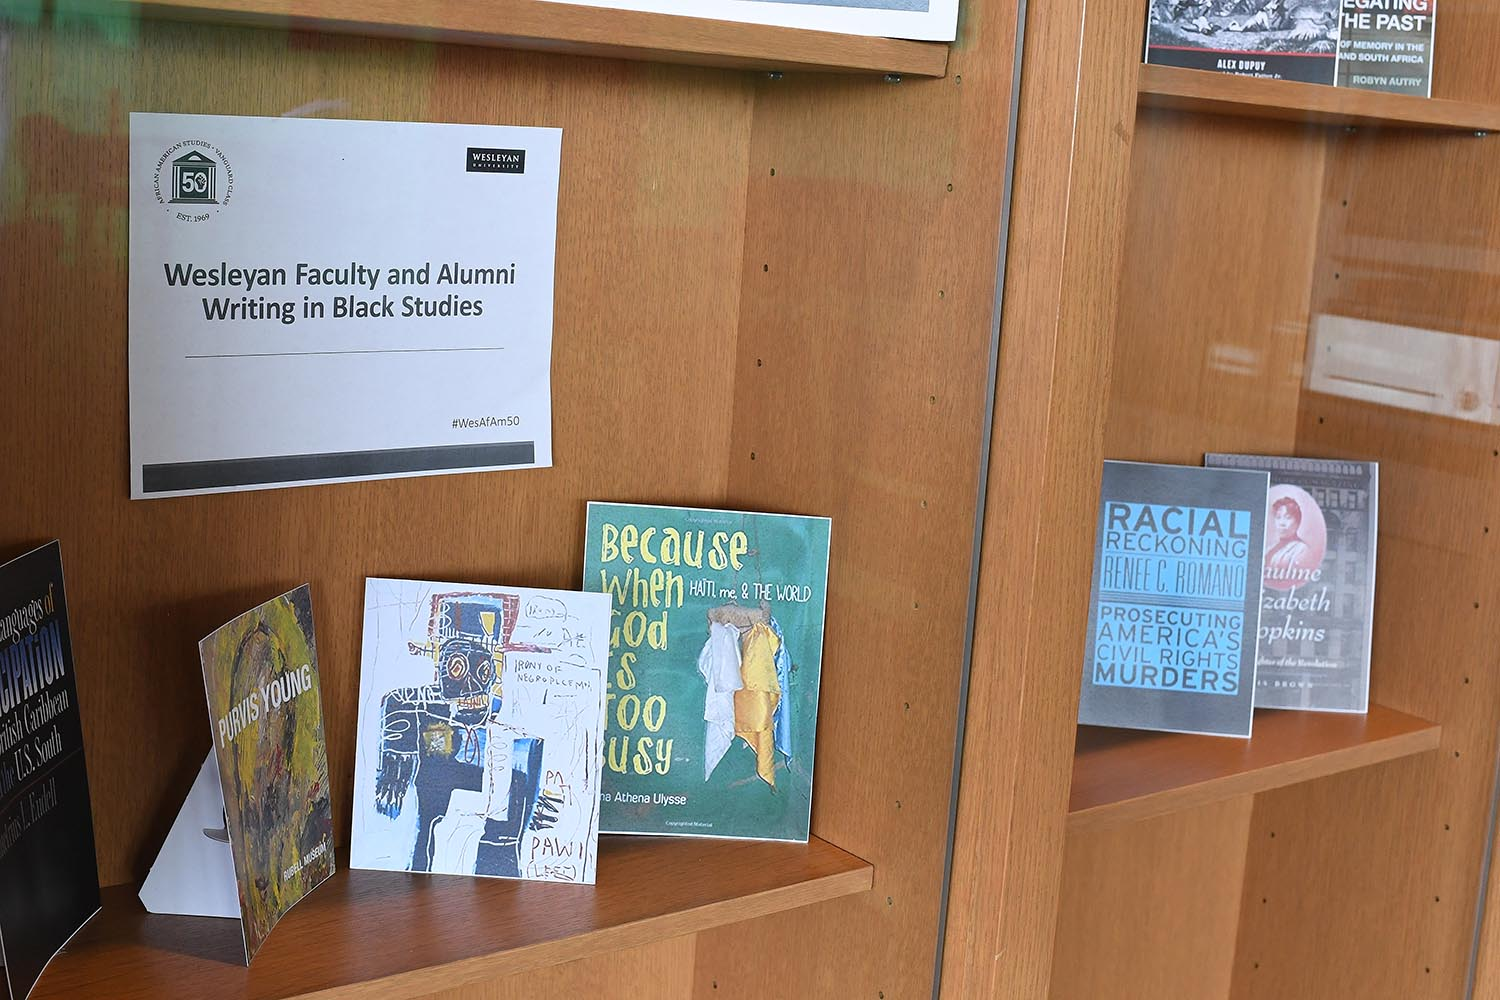 "The ""Books in Black Studies"" exhibit, located in Daniel Family Commons, features several book covers by Wesleyan faculty and alumni authors."